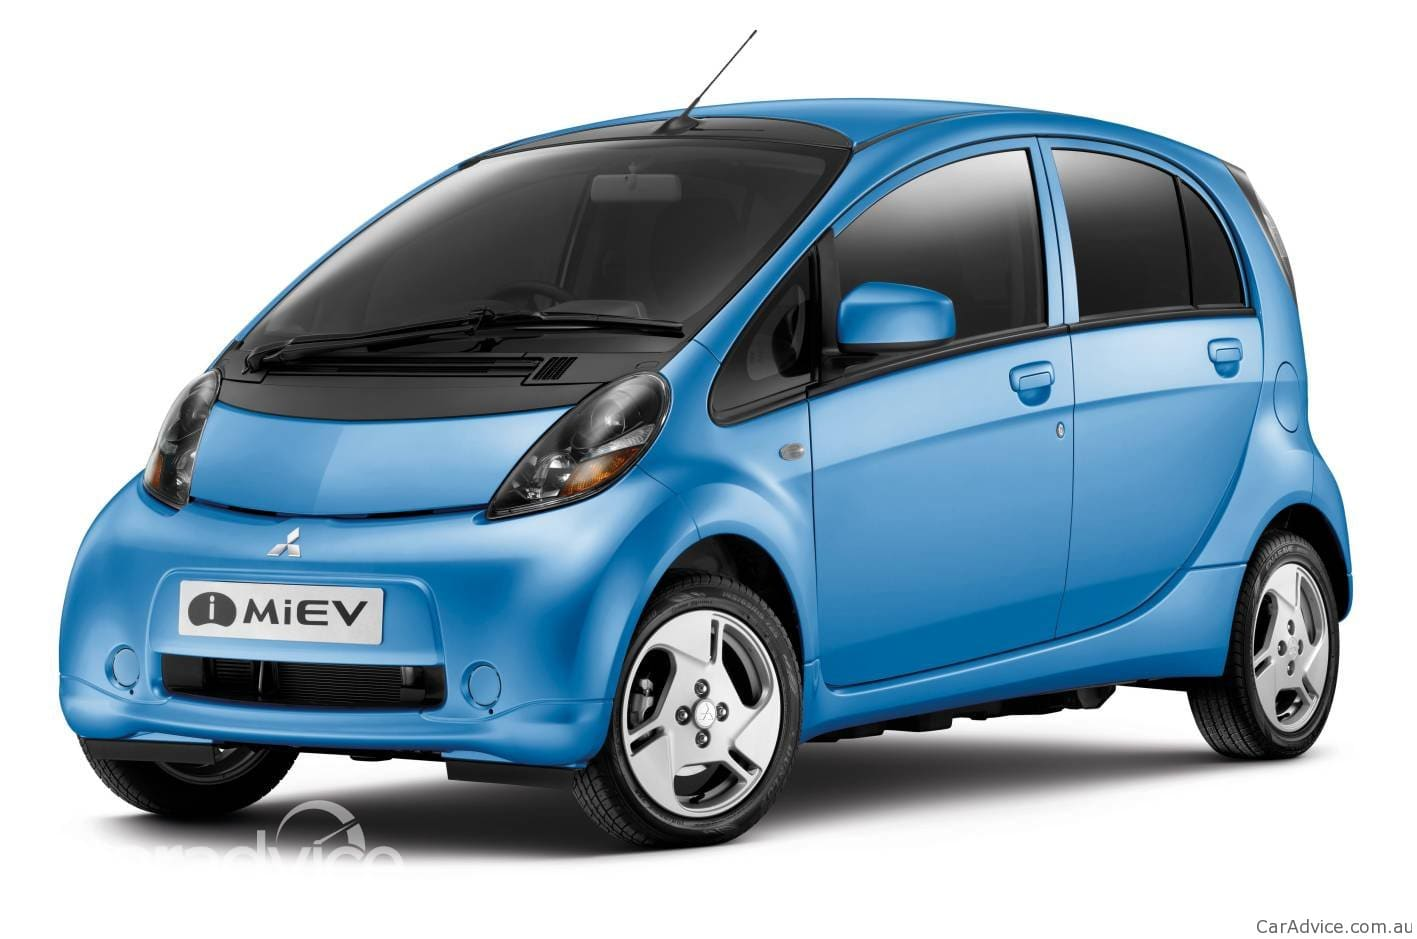 test drive a mitsubishi i-miev at the australian